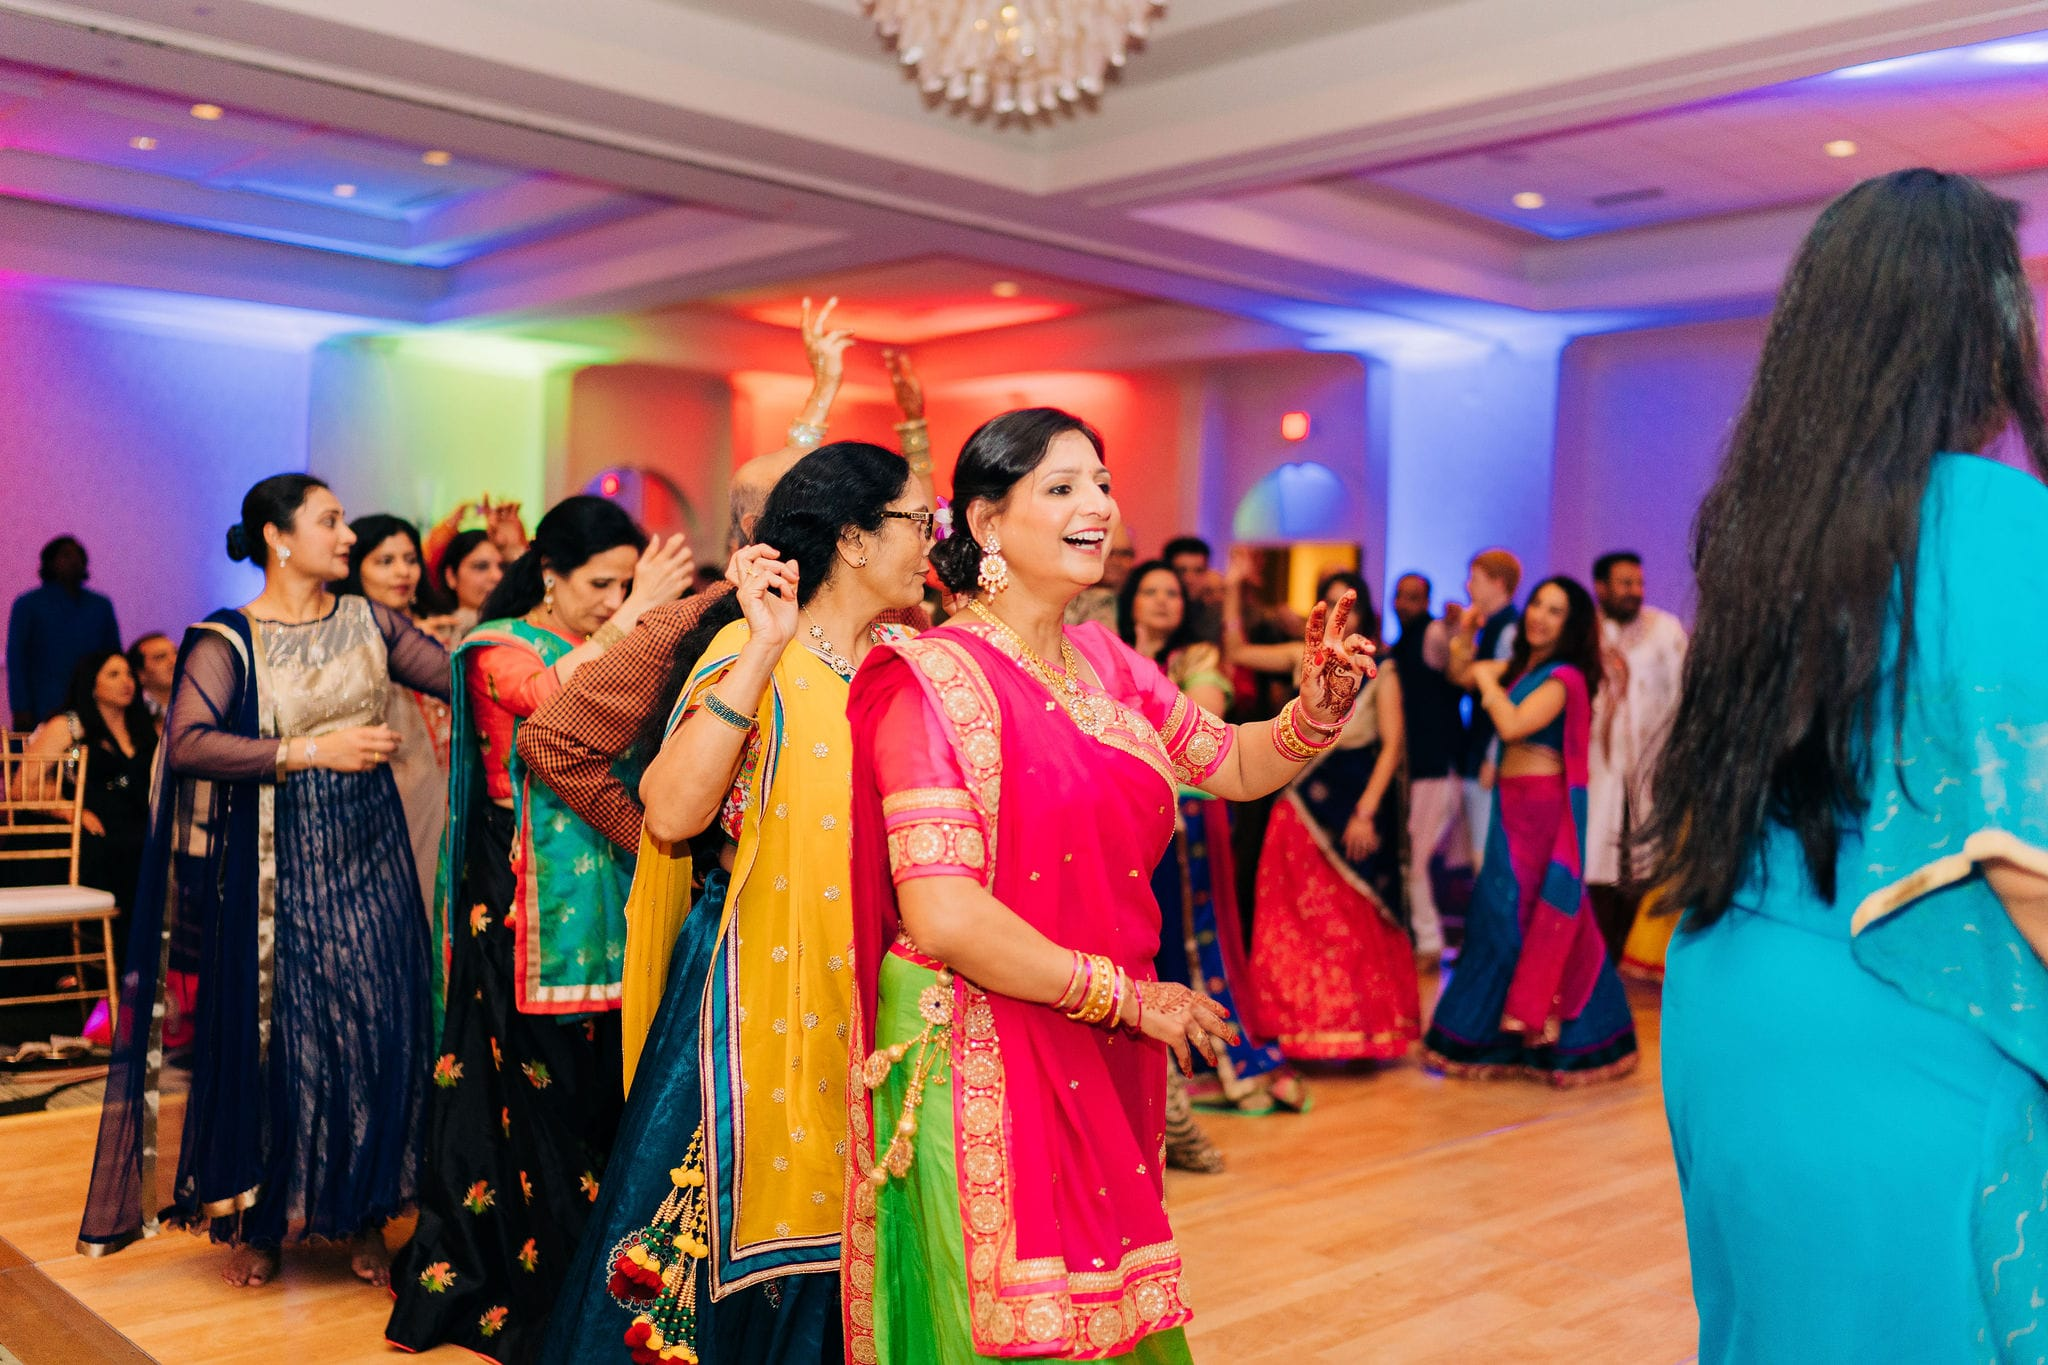 indian-wedding-los-angeles-photographer-081.jpg